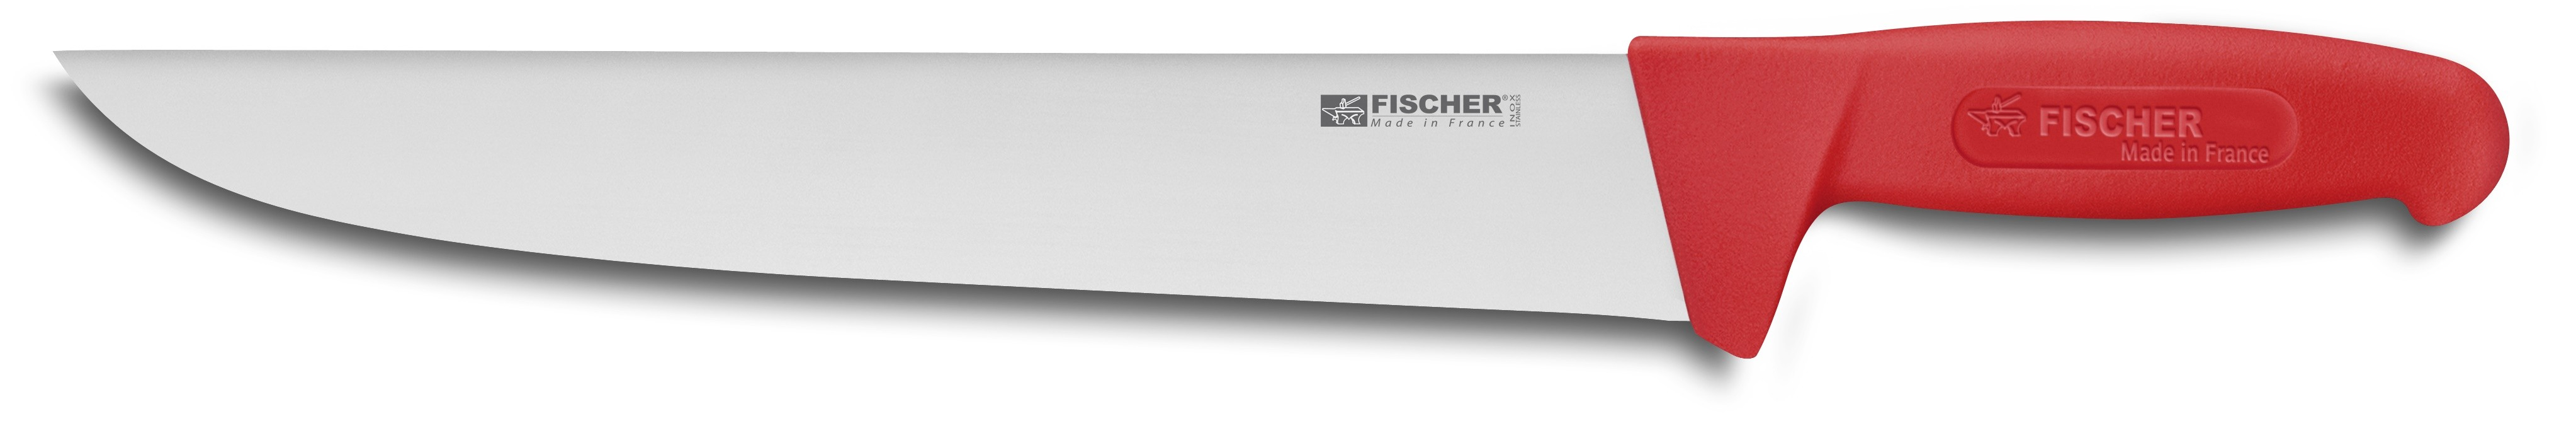 fischer 7 piece professional case for butchers fischer bargoin butcher s professional case 7 knives and accessories red handle